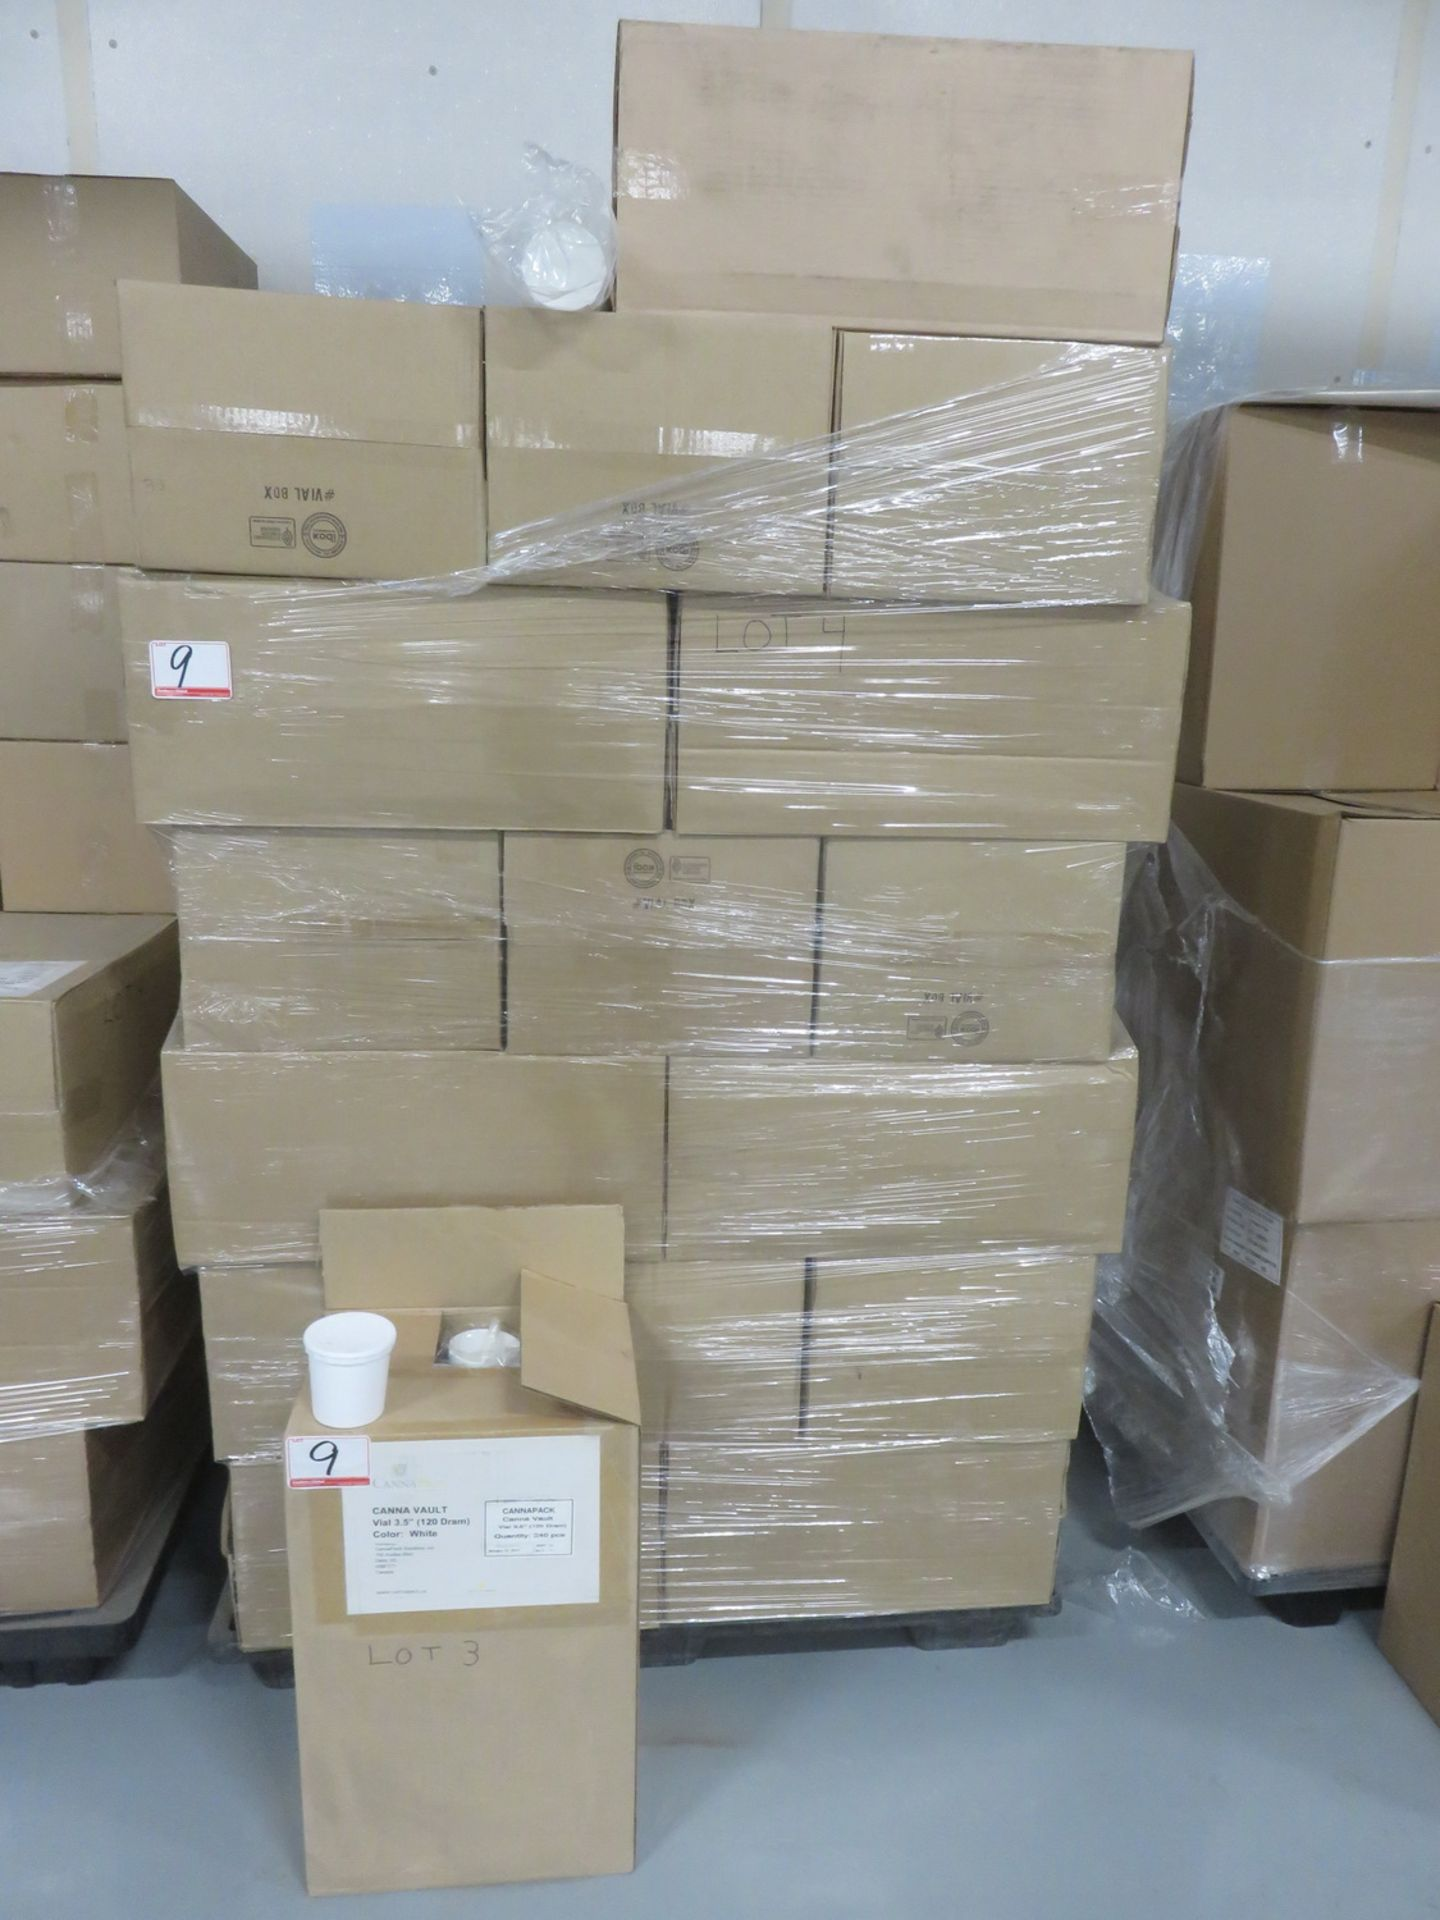 """Lot 9 - LOT - (33 BOXES) - CANNA PACK CANNA-VAULT VIAL 3.5"""" (120 DRAM) WHITE PLASTIC CANISTERS (240 PCS/BOX)"""